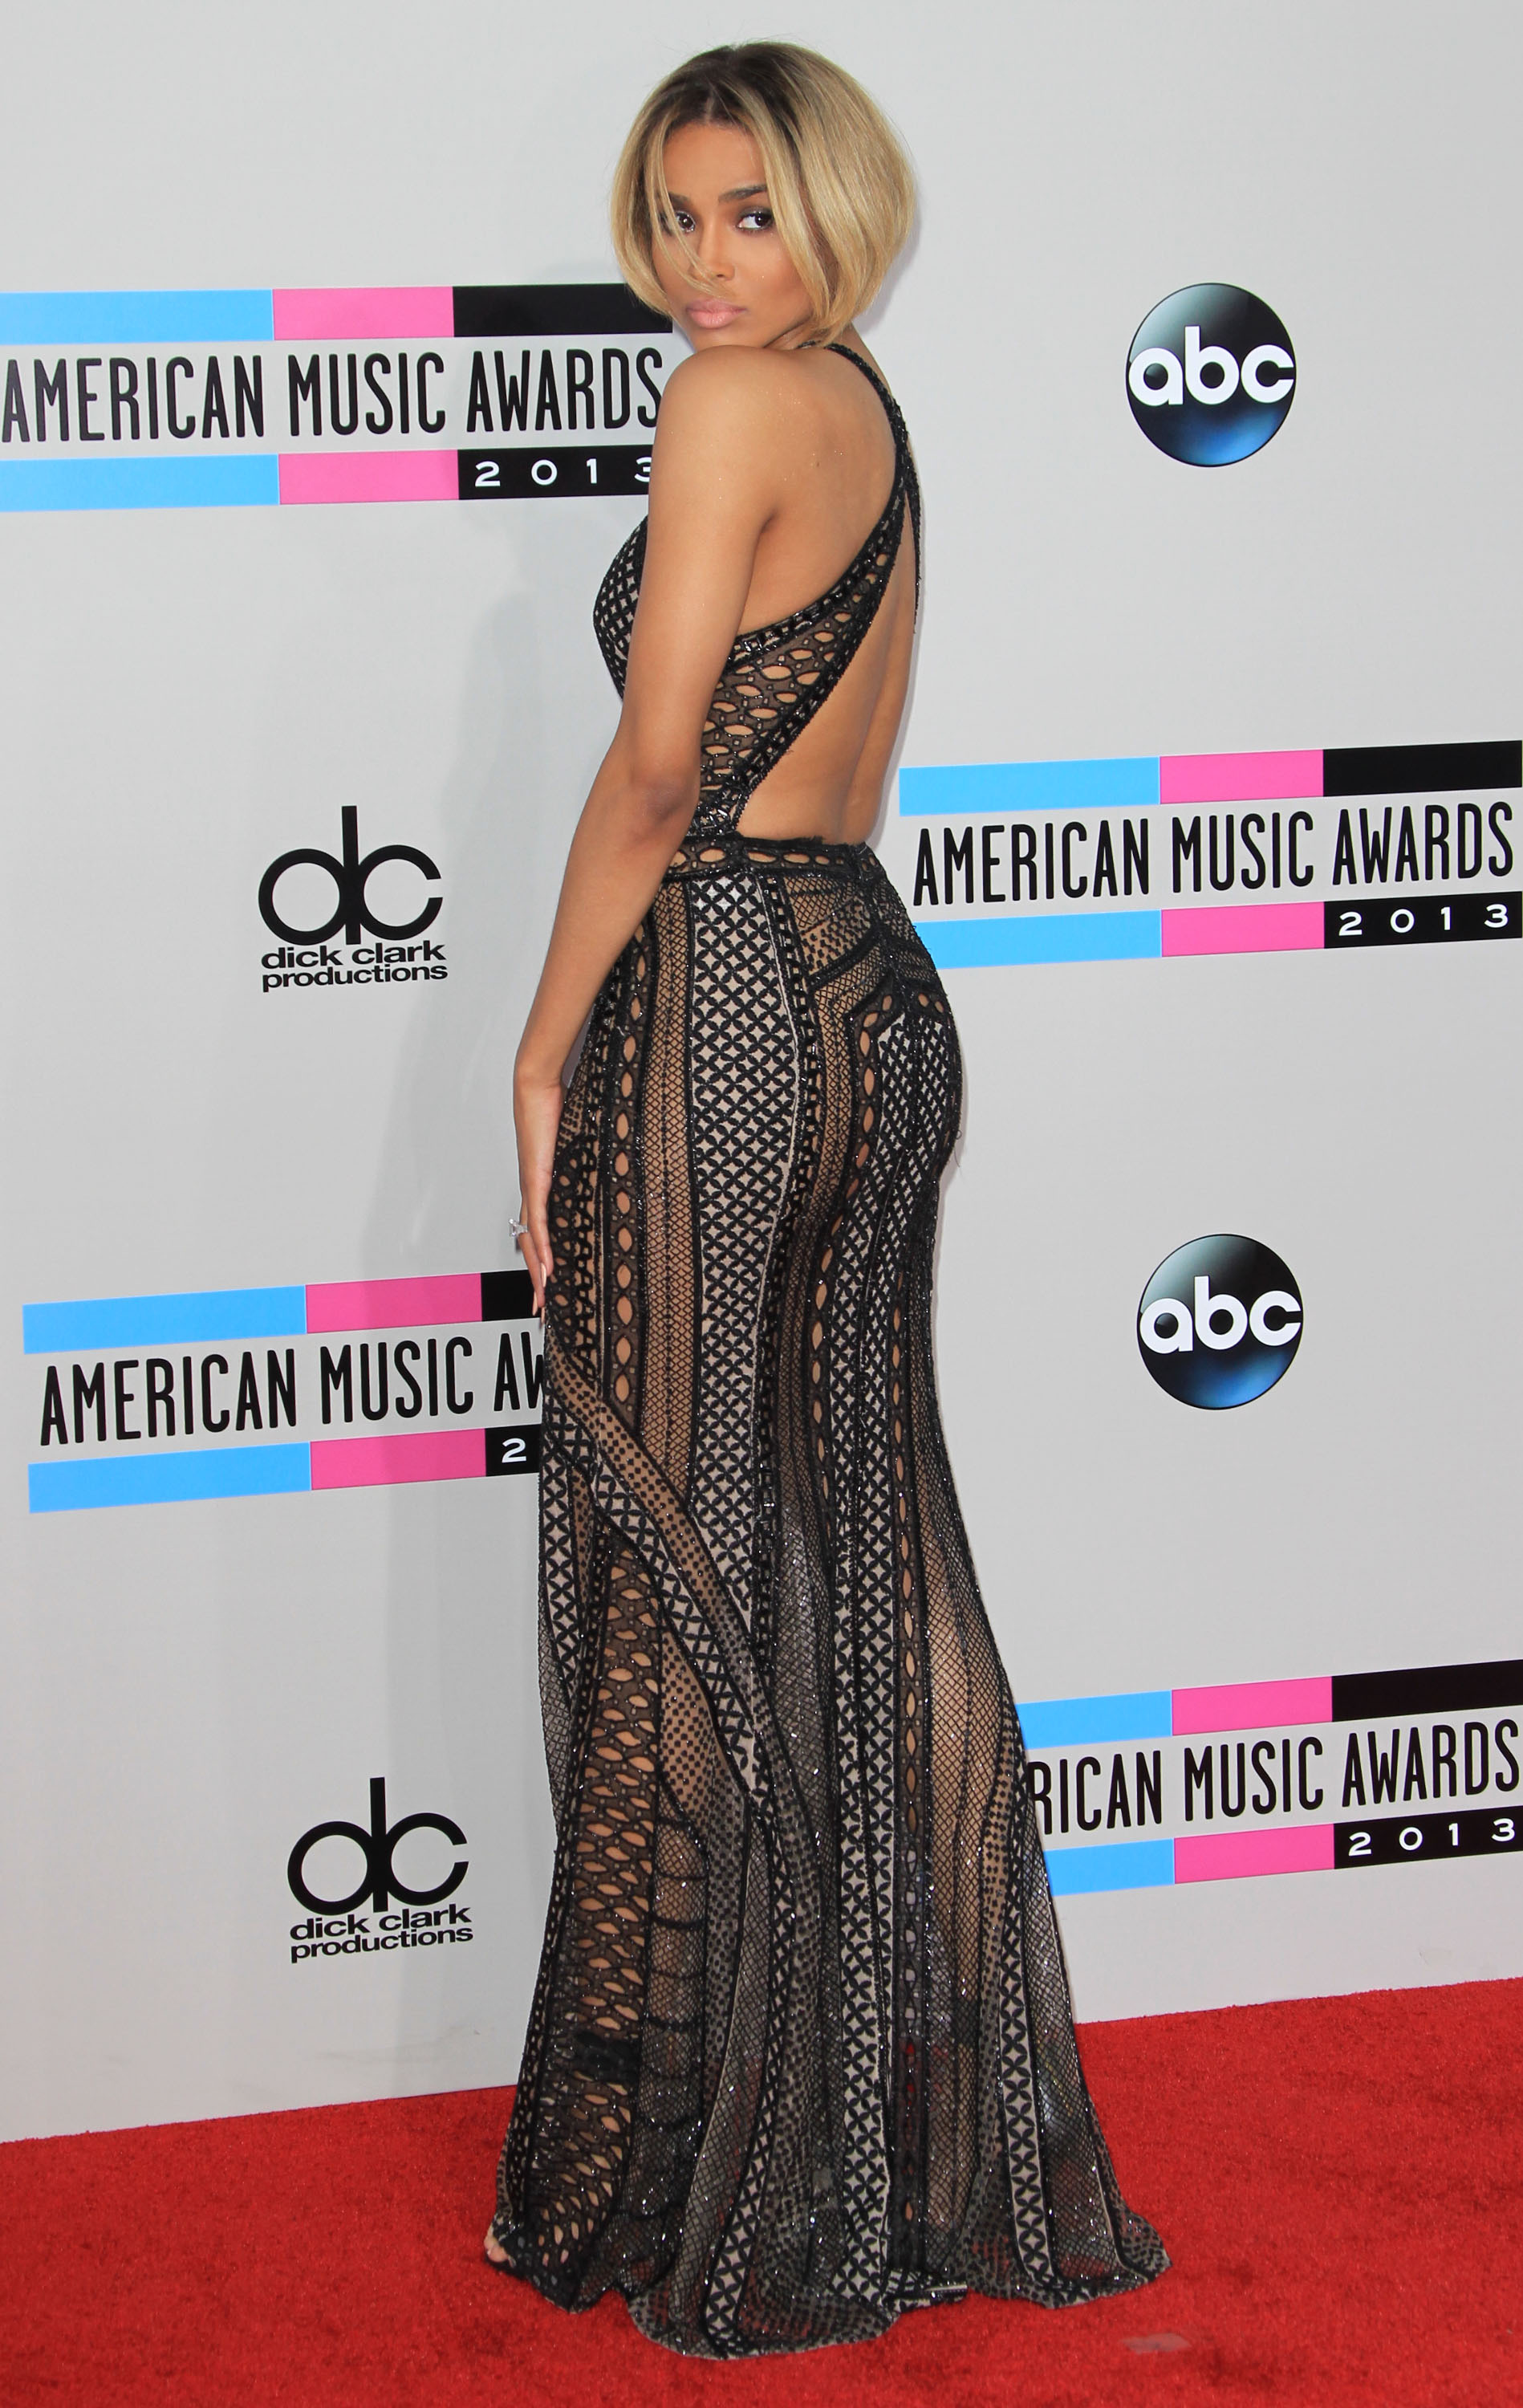 2013 American Music Awards held at Nokia Theatre - Arrivals Featuring: Ciara Where: Los Angeles, California, United States When: 24 Nov 2013 Credit: Adriana M. Barraza/WENN.com